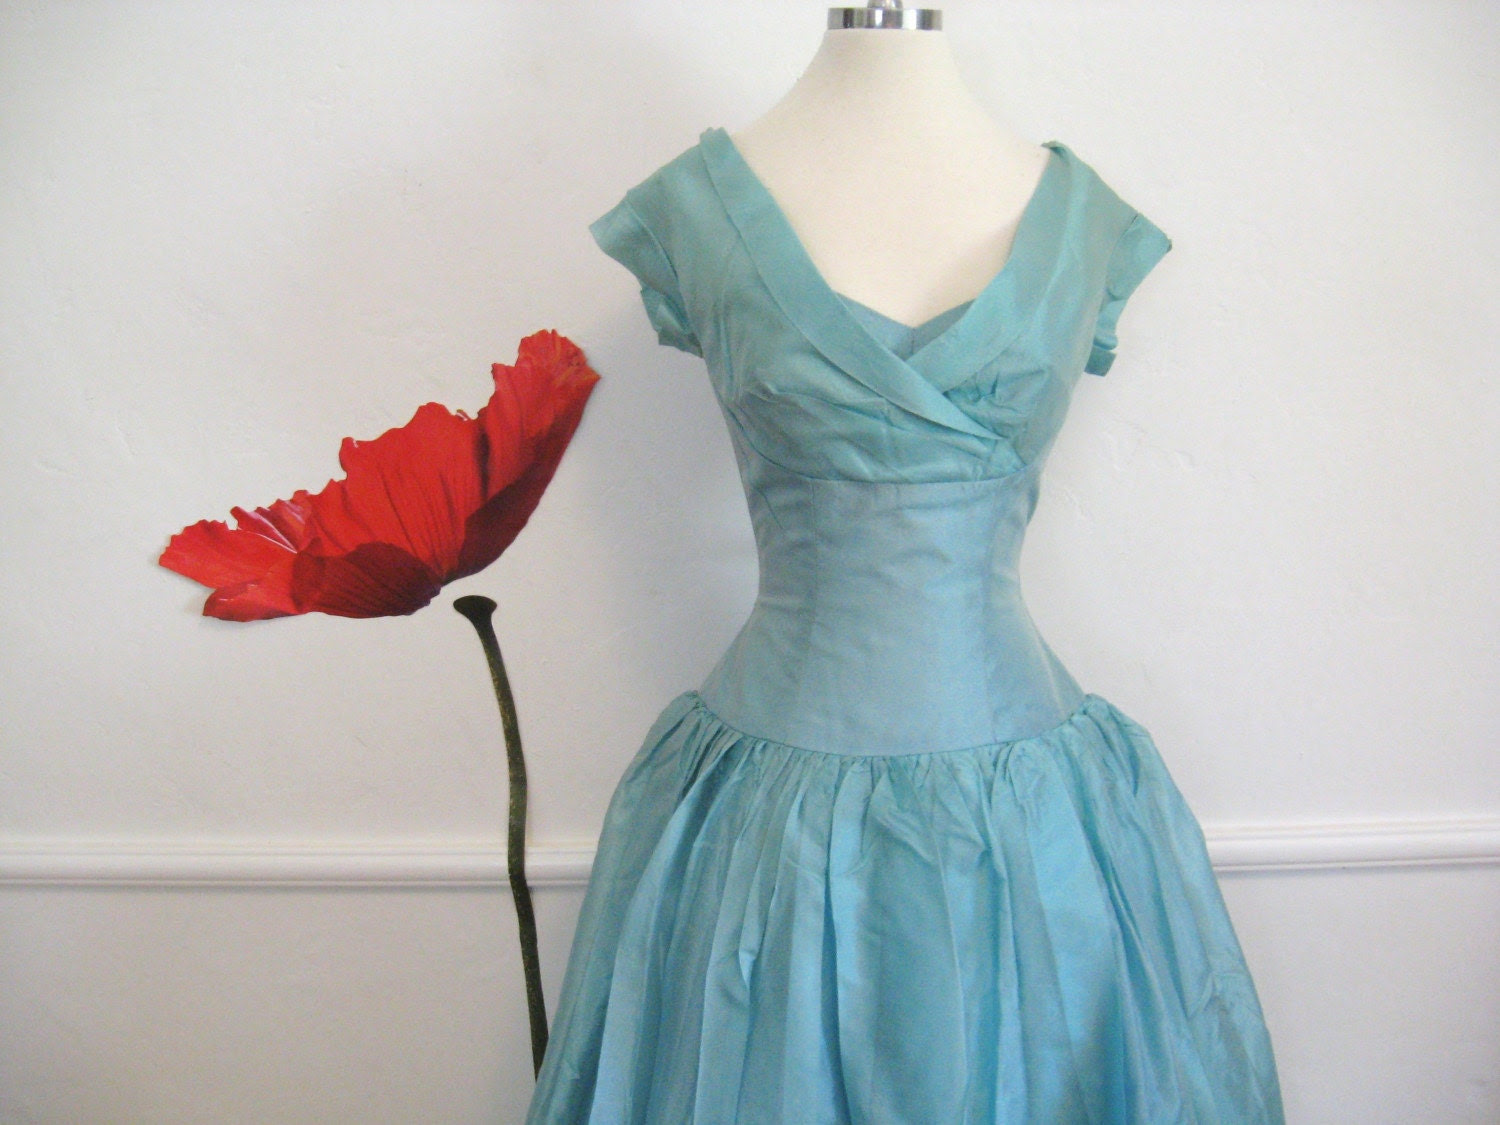 50s GLAM Ice Blue SHELF BUST Vintage DRESS or BALL GOWN